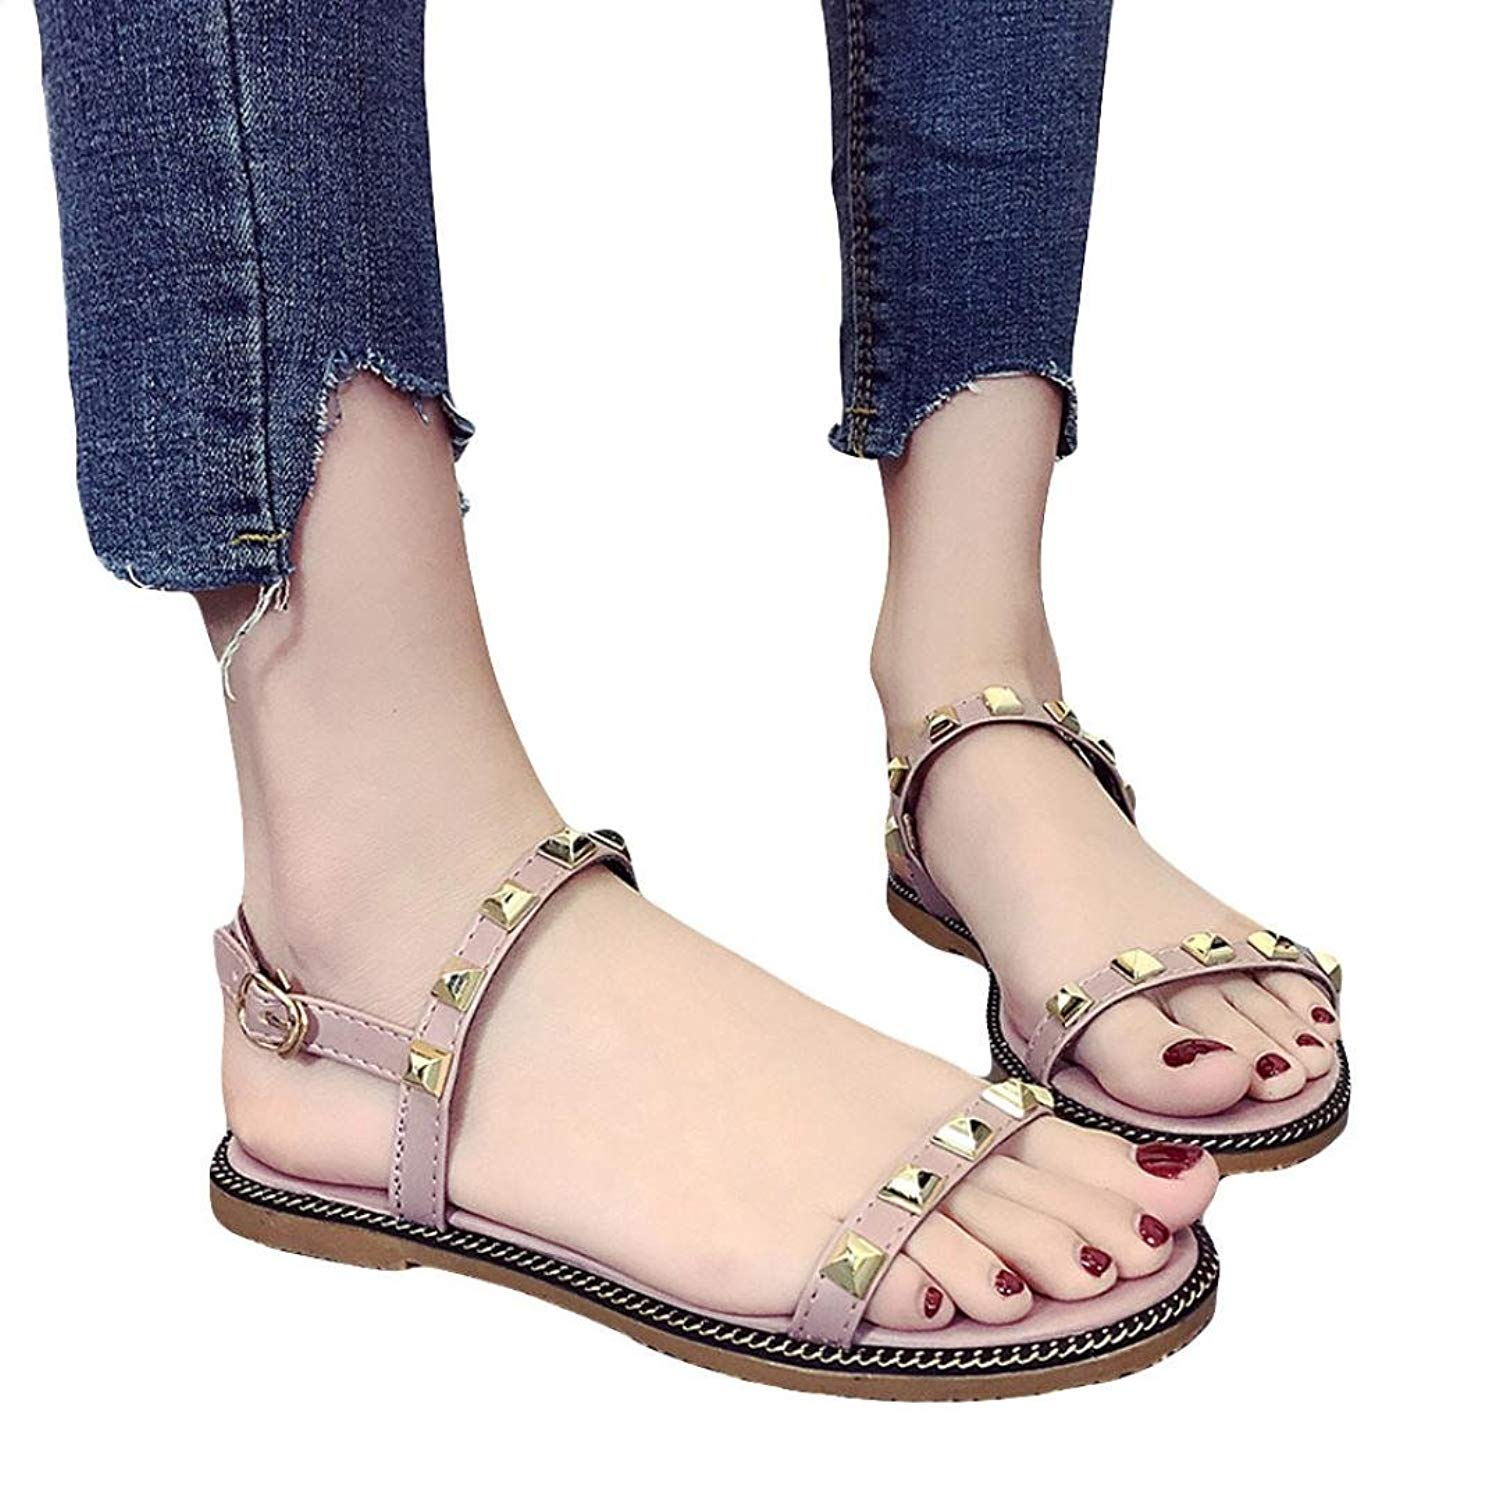 2ffae9eda131ac Get Quotations · Pervobs Sandals Women Flat Heel Casual Sandals Basic  Buckle Strap Female Pretty Rivet Sandals Shoes